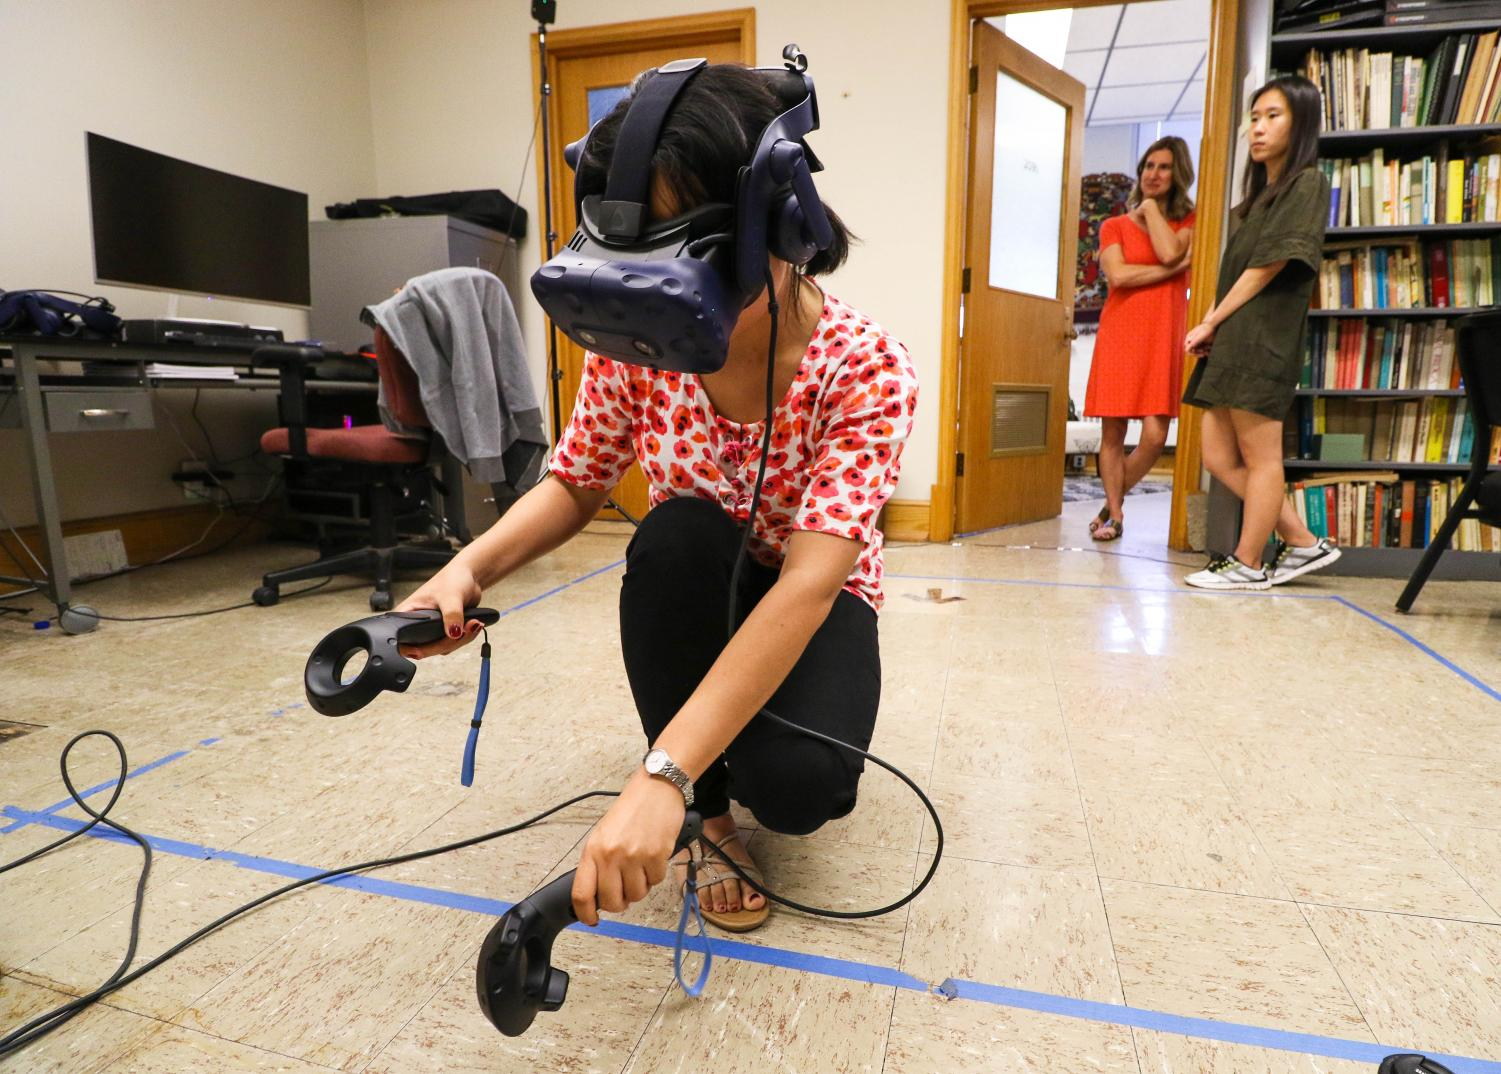 Graduate student Xuehui Chao works the virtual reality system for ANTH 399, currently in development, in Davenport Hall on Sep. 19.